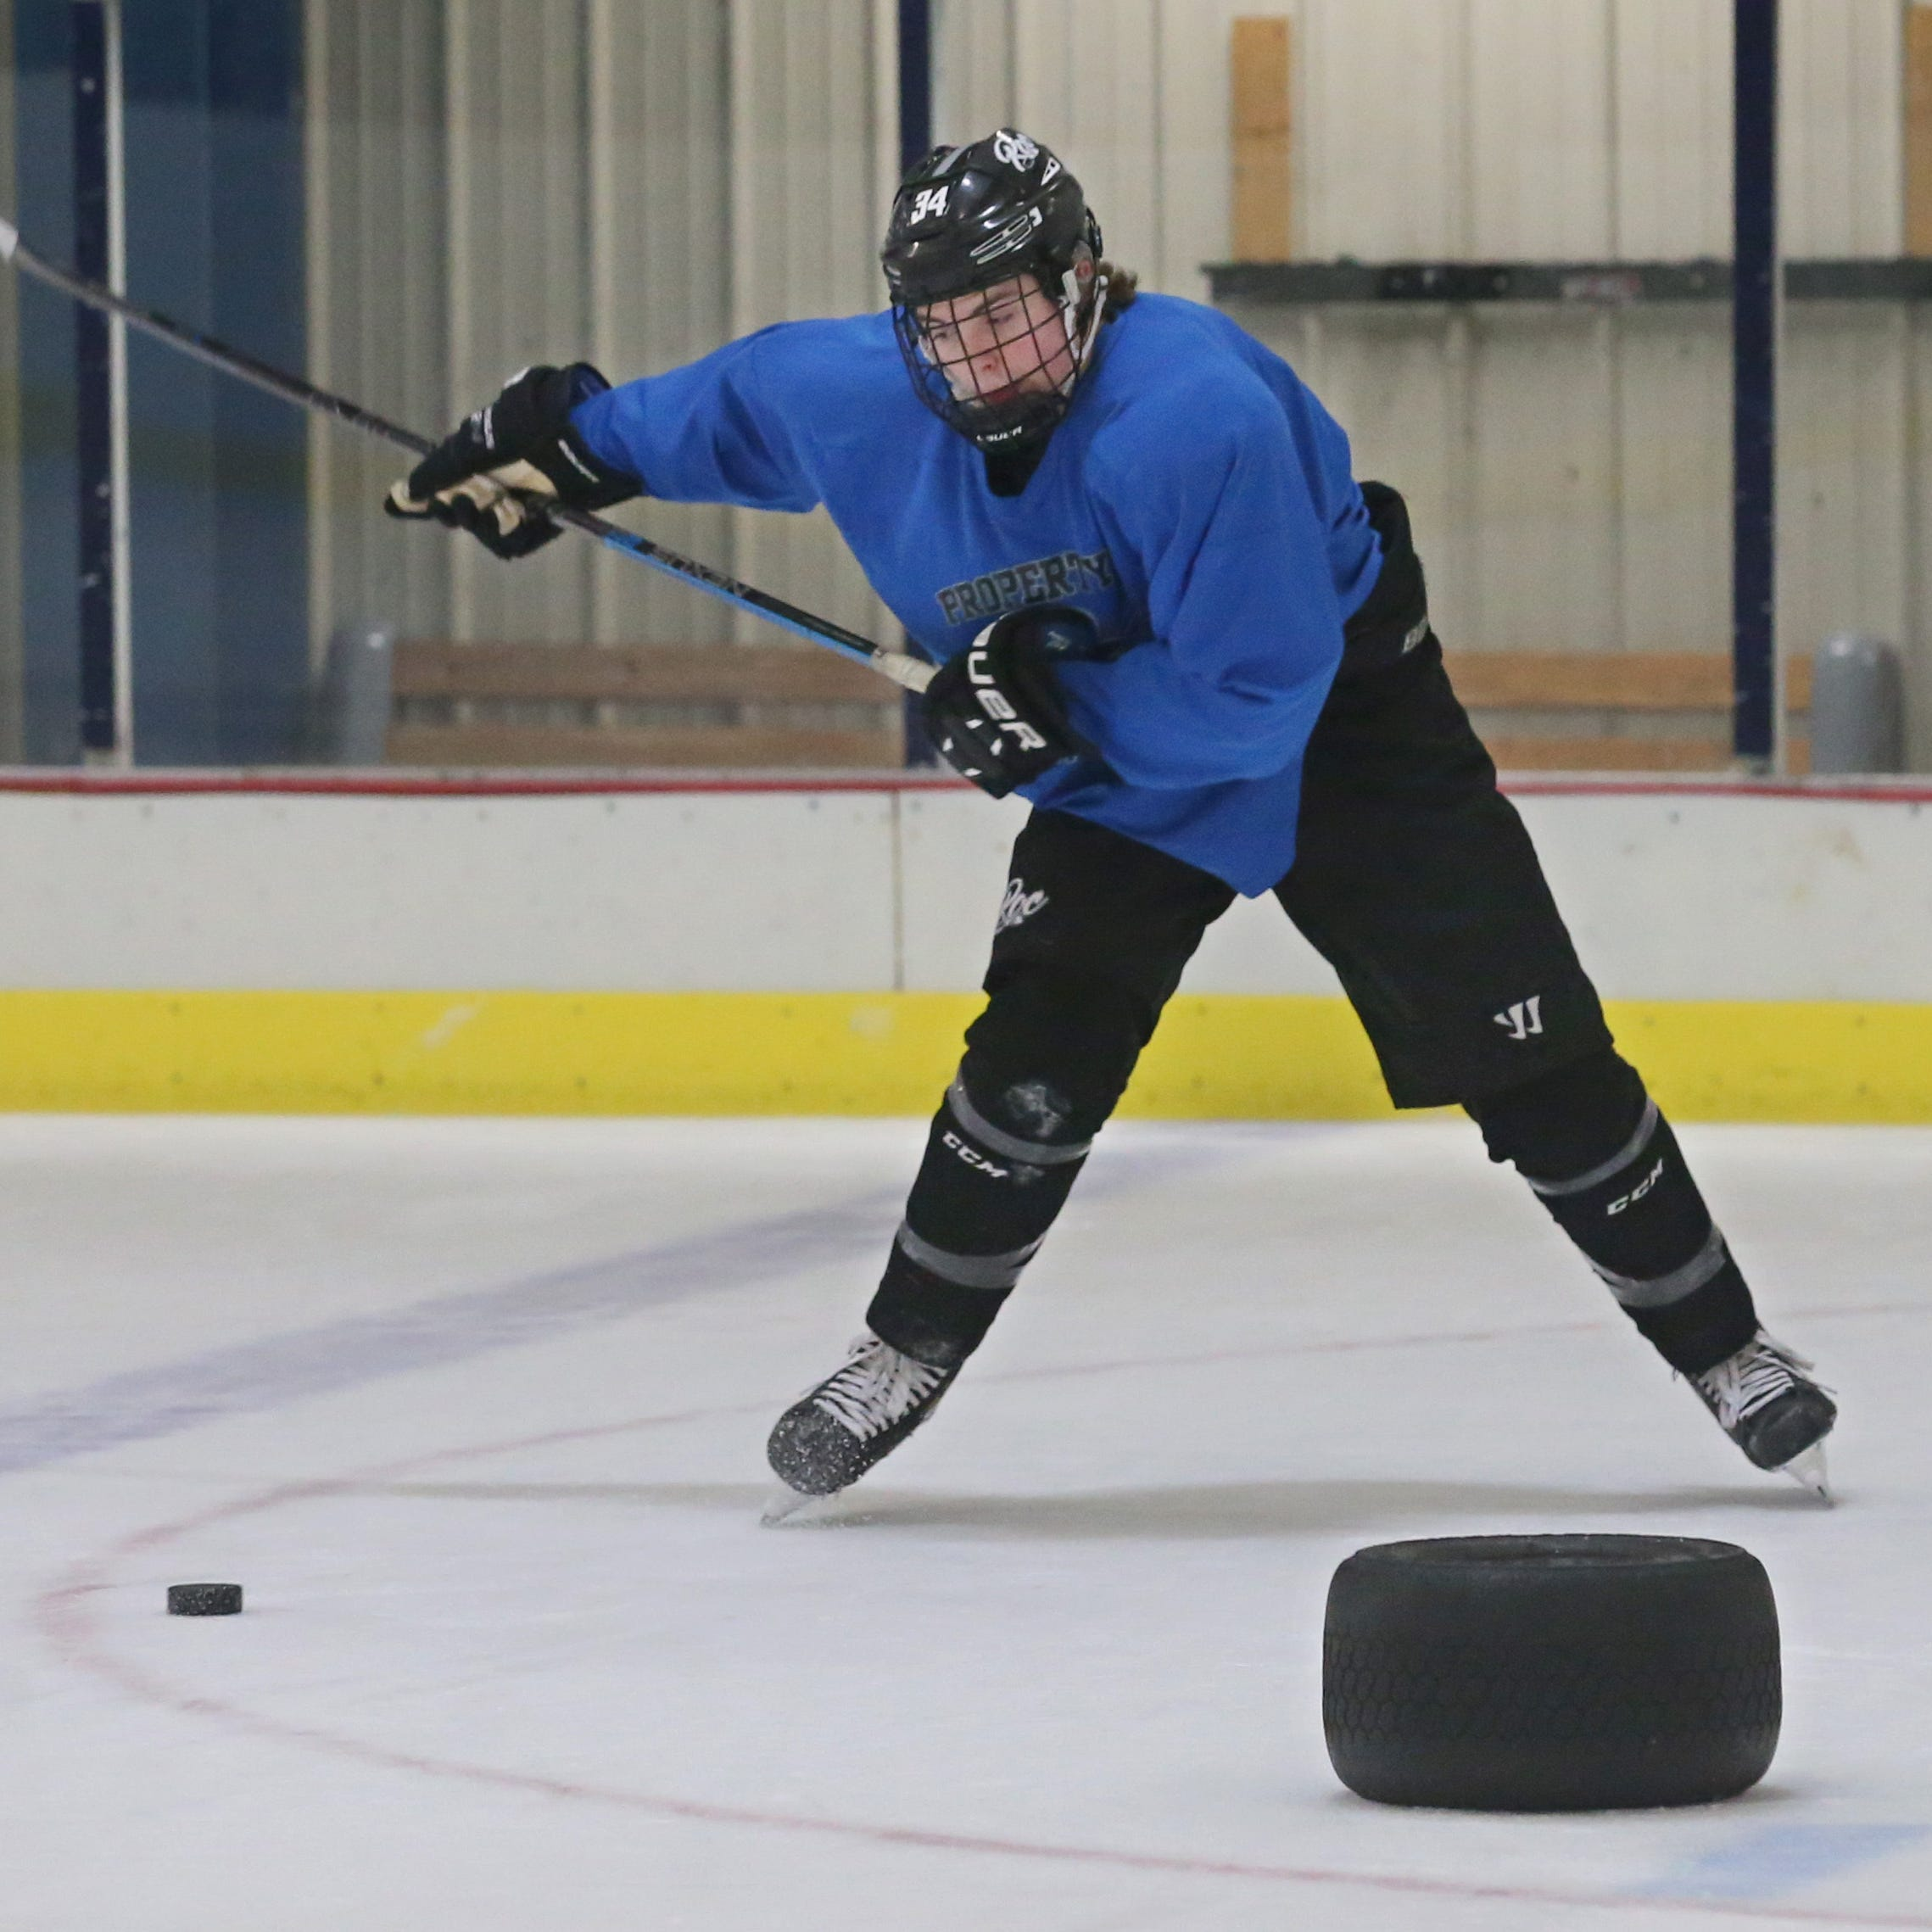 Blake Humphrey, RIT's resilient hockey recruit, carries his inspiration on his back